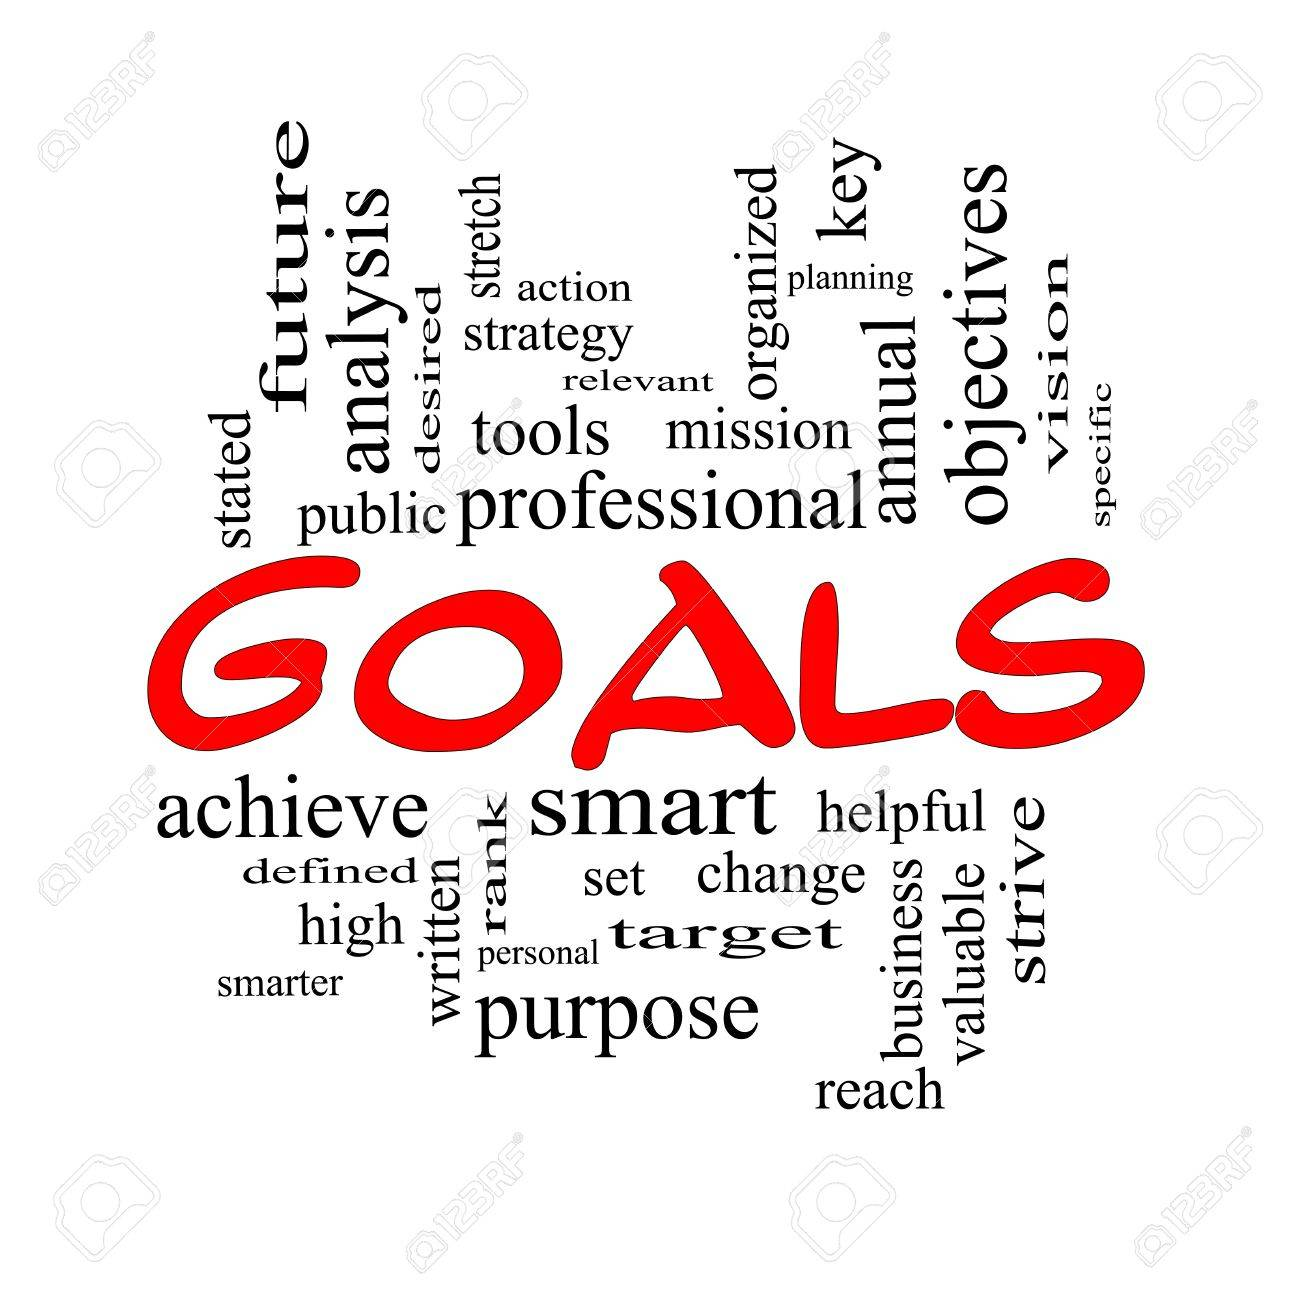 goals word cloud concept in red and black great terms such goals word cloud concept in red and black great terms such as planning missions